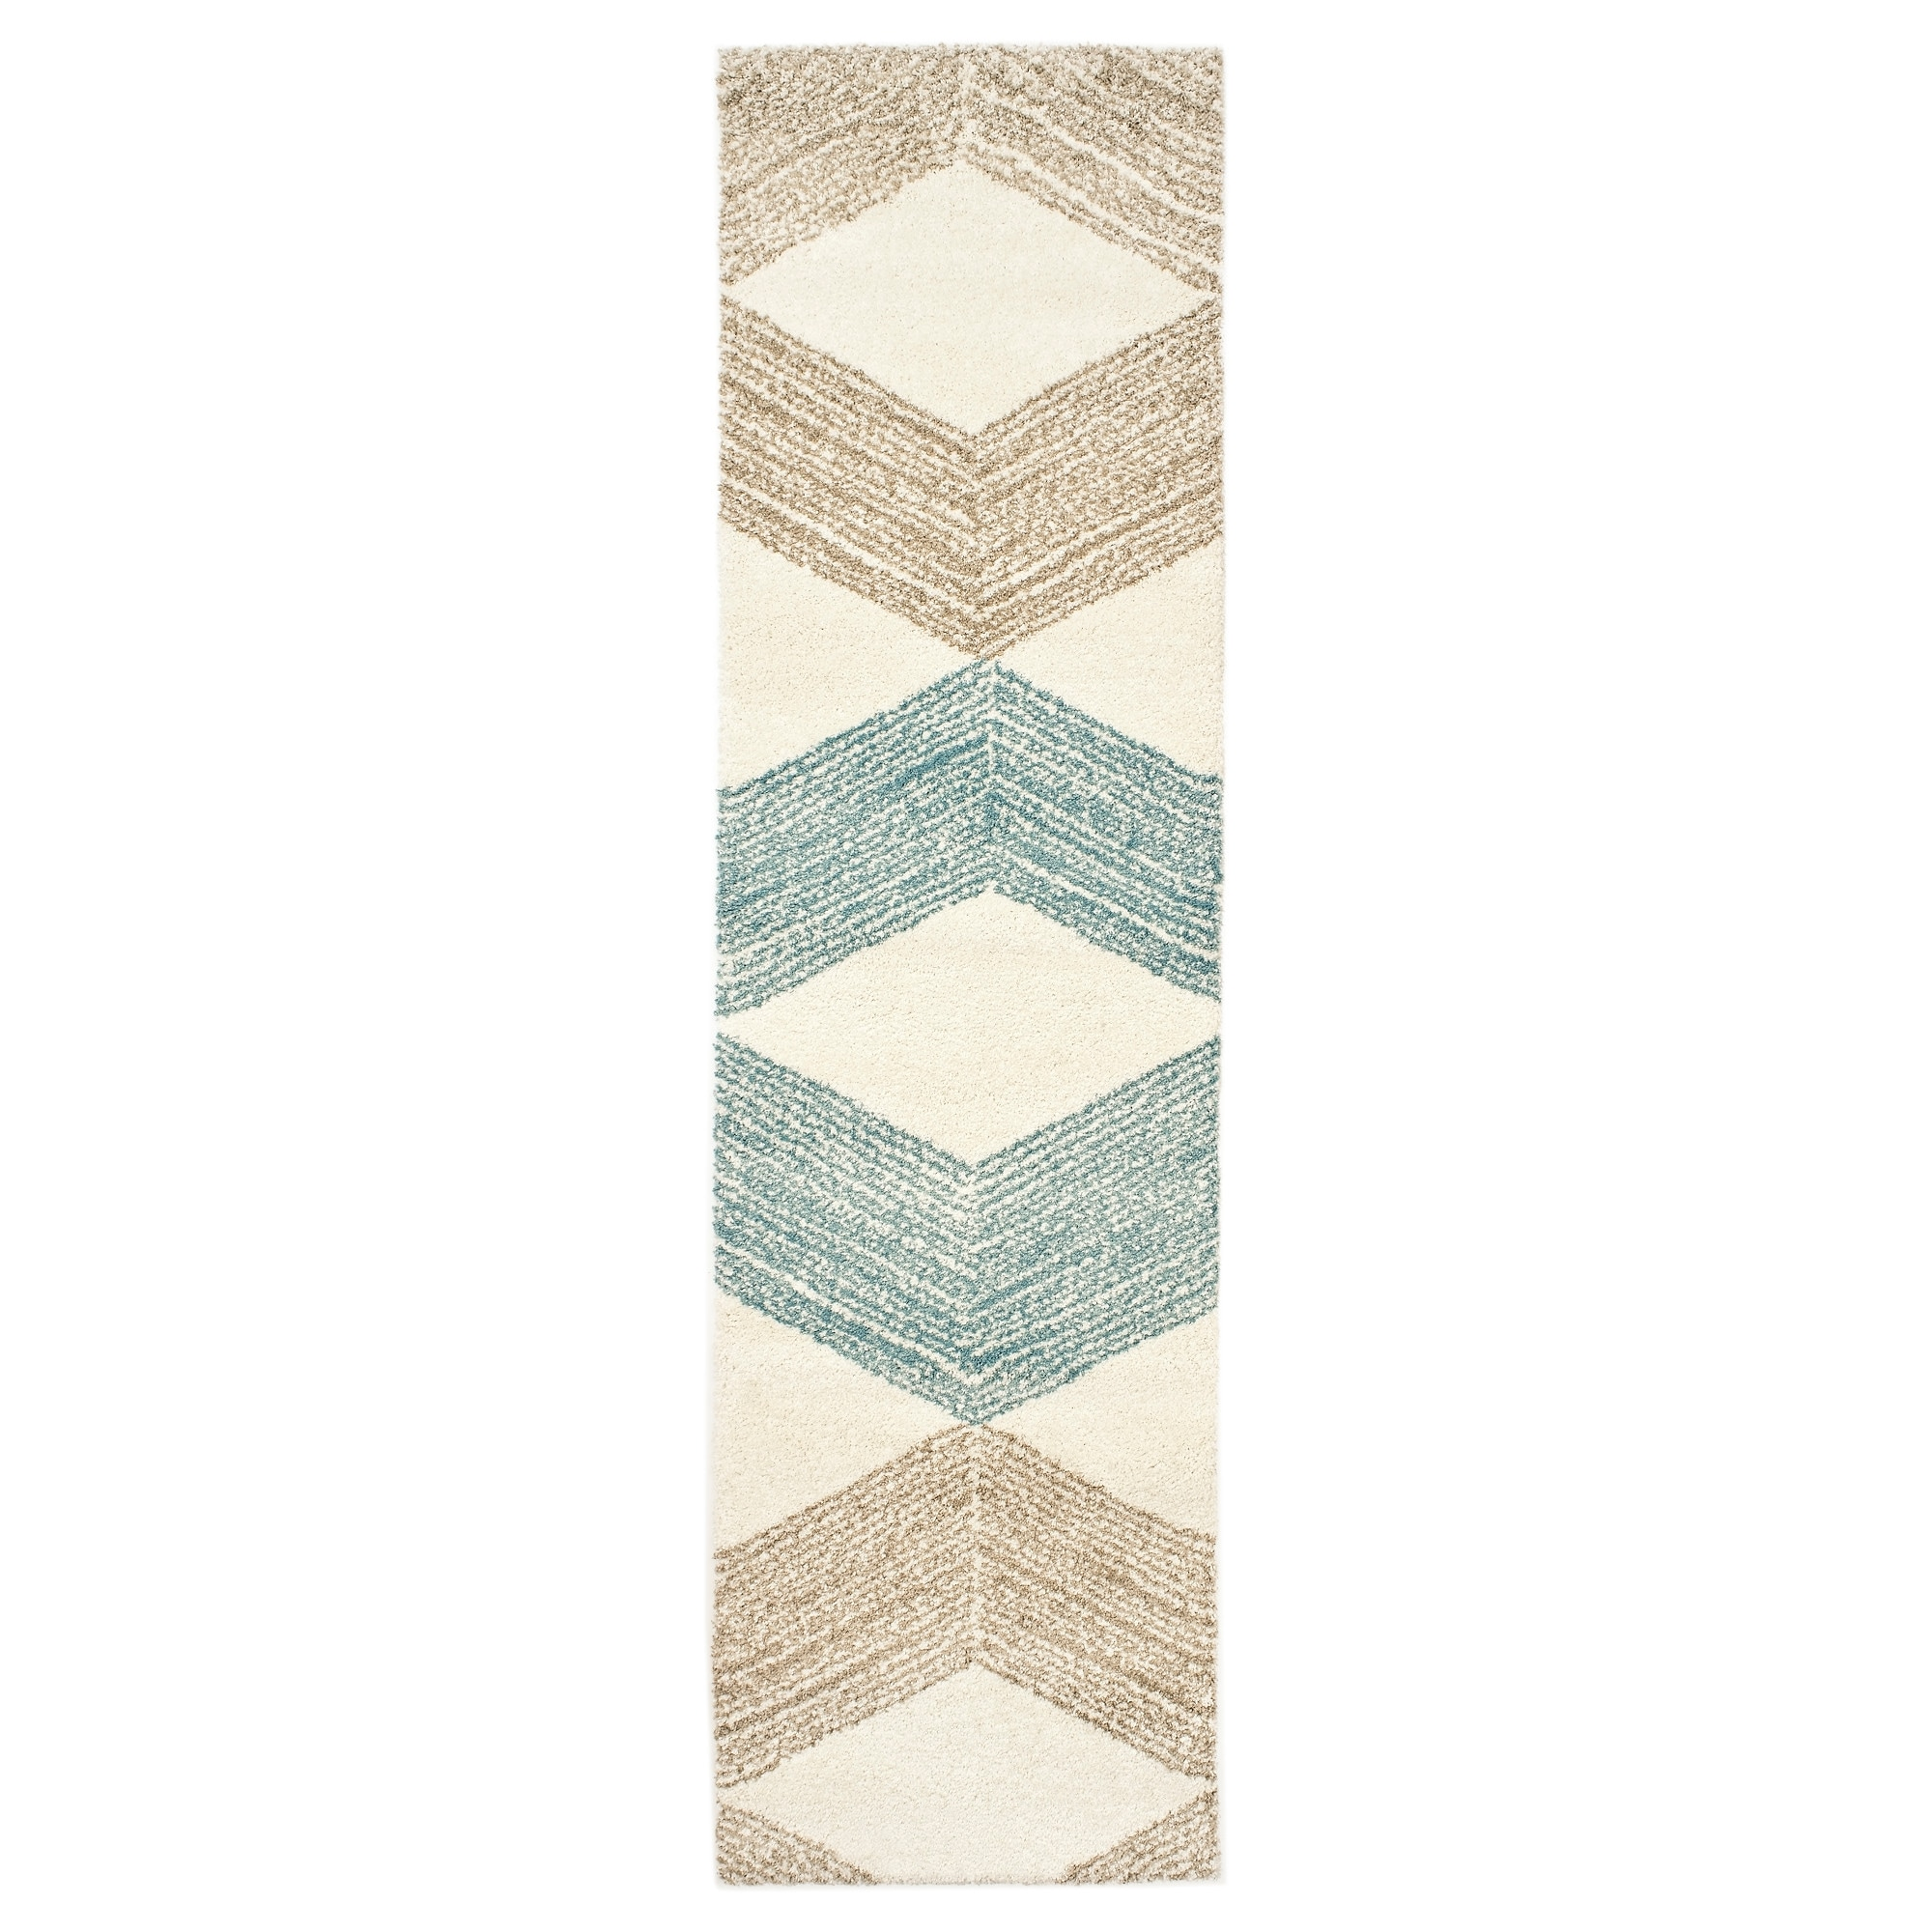 Delighful Area Rugs Ikea High Pile Turquoise Beige Length 7 10 With Inspiration